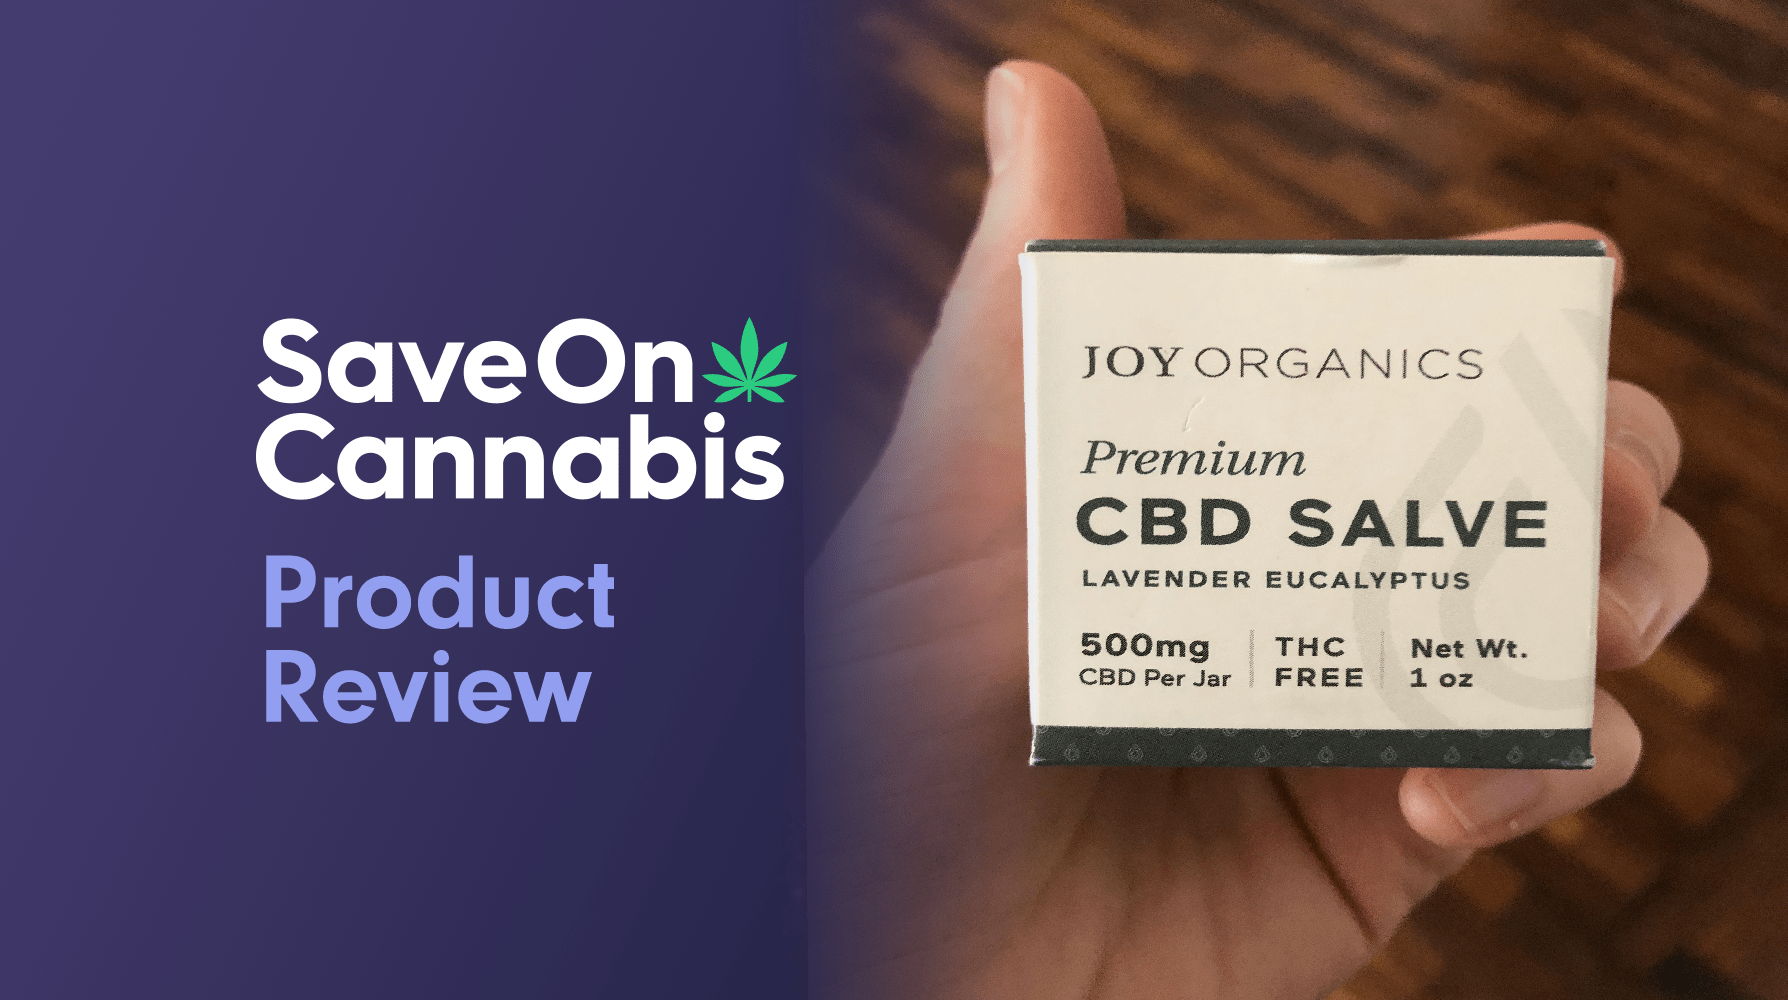 joy organics cbd salve save on cannabis review website